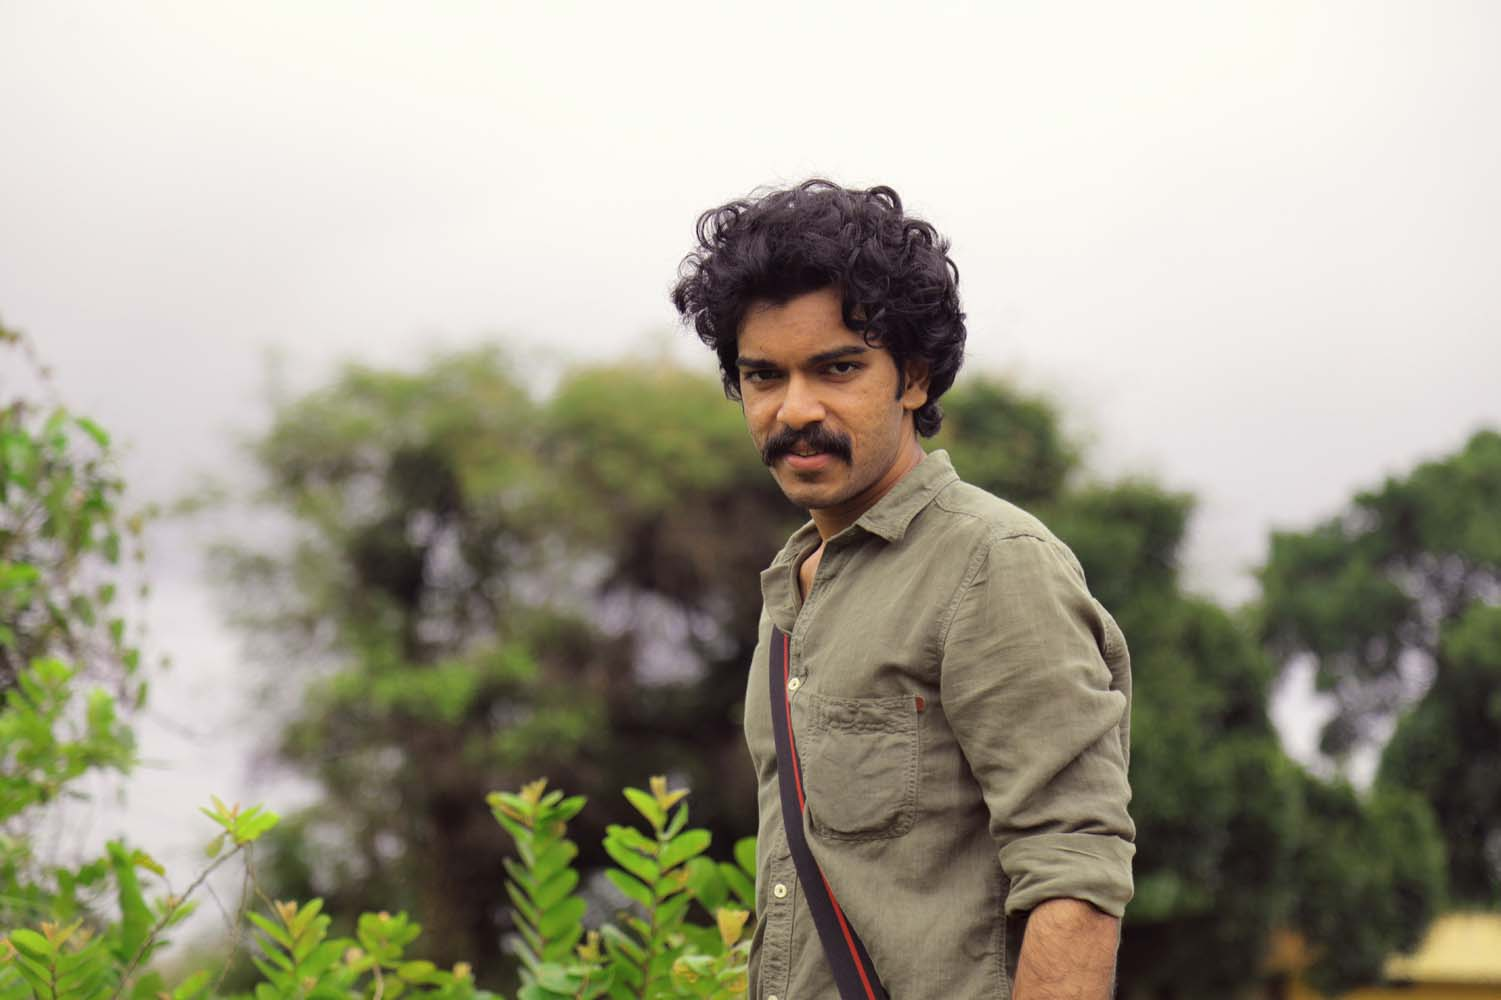 dhanesh anand, lilli malayalam movie, lilli movie villain, new generation malayalam actors, young mollywood actor, actor dhanesh anand photos, lilli rajesh